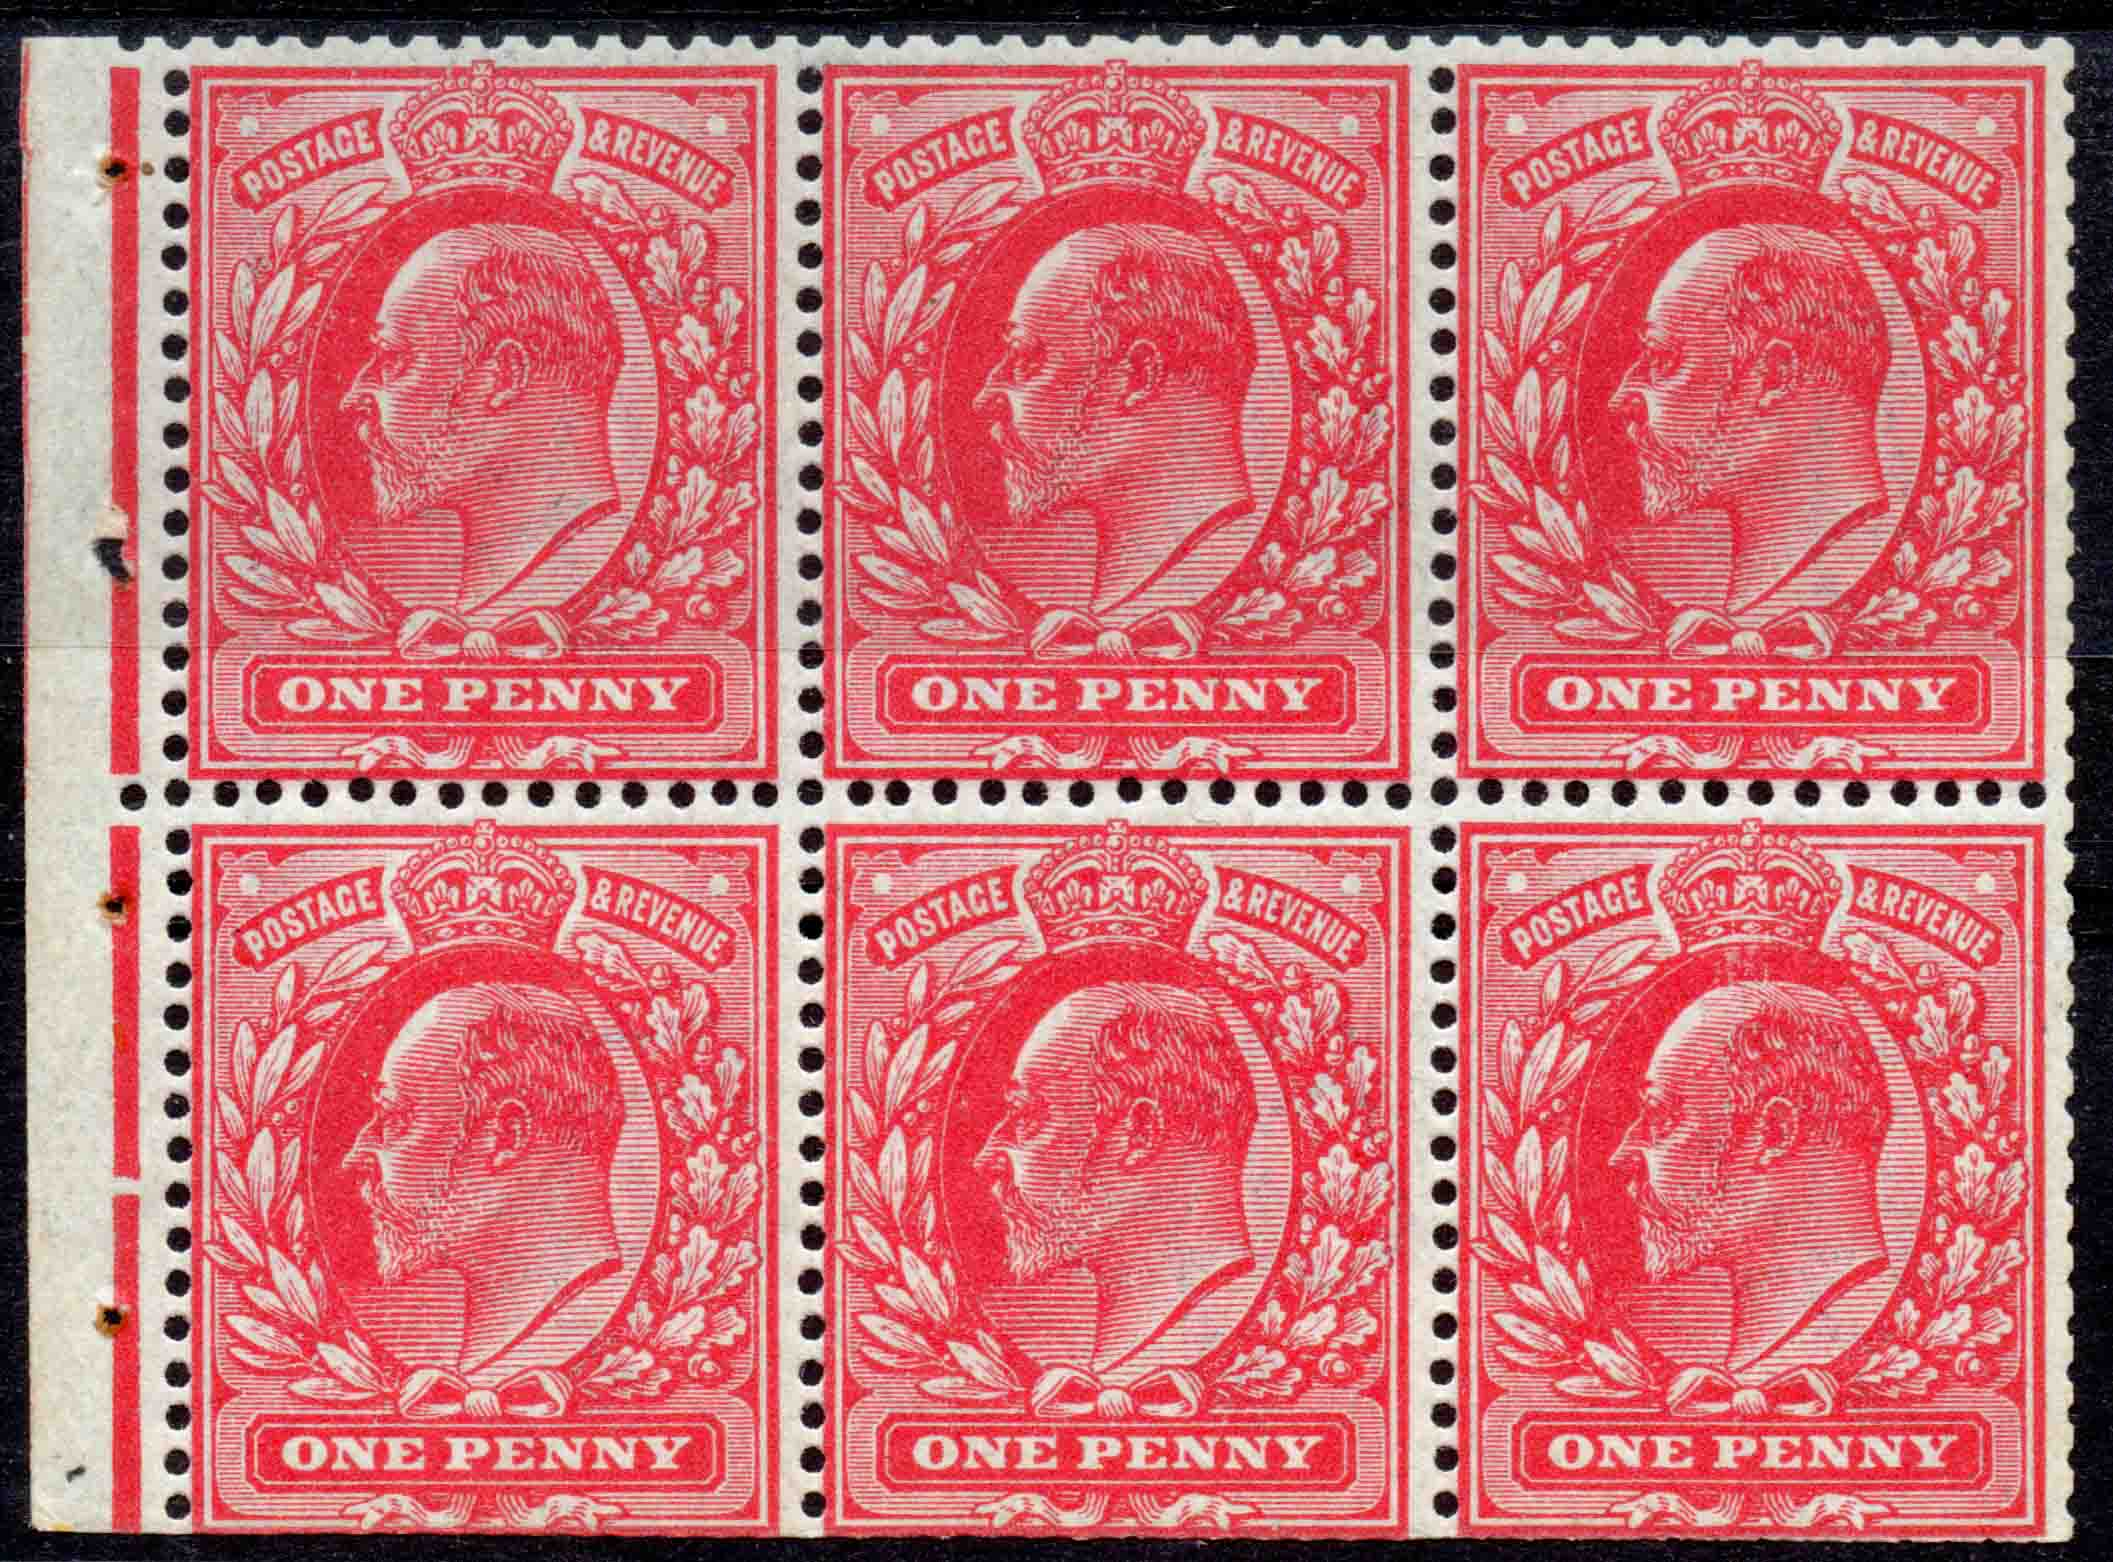 1911 1d Harrison Rose-carmine Pane of Six WATERMARK INVERTED